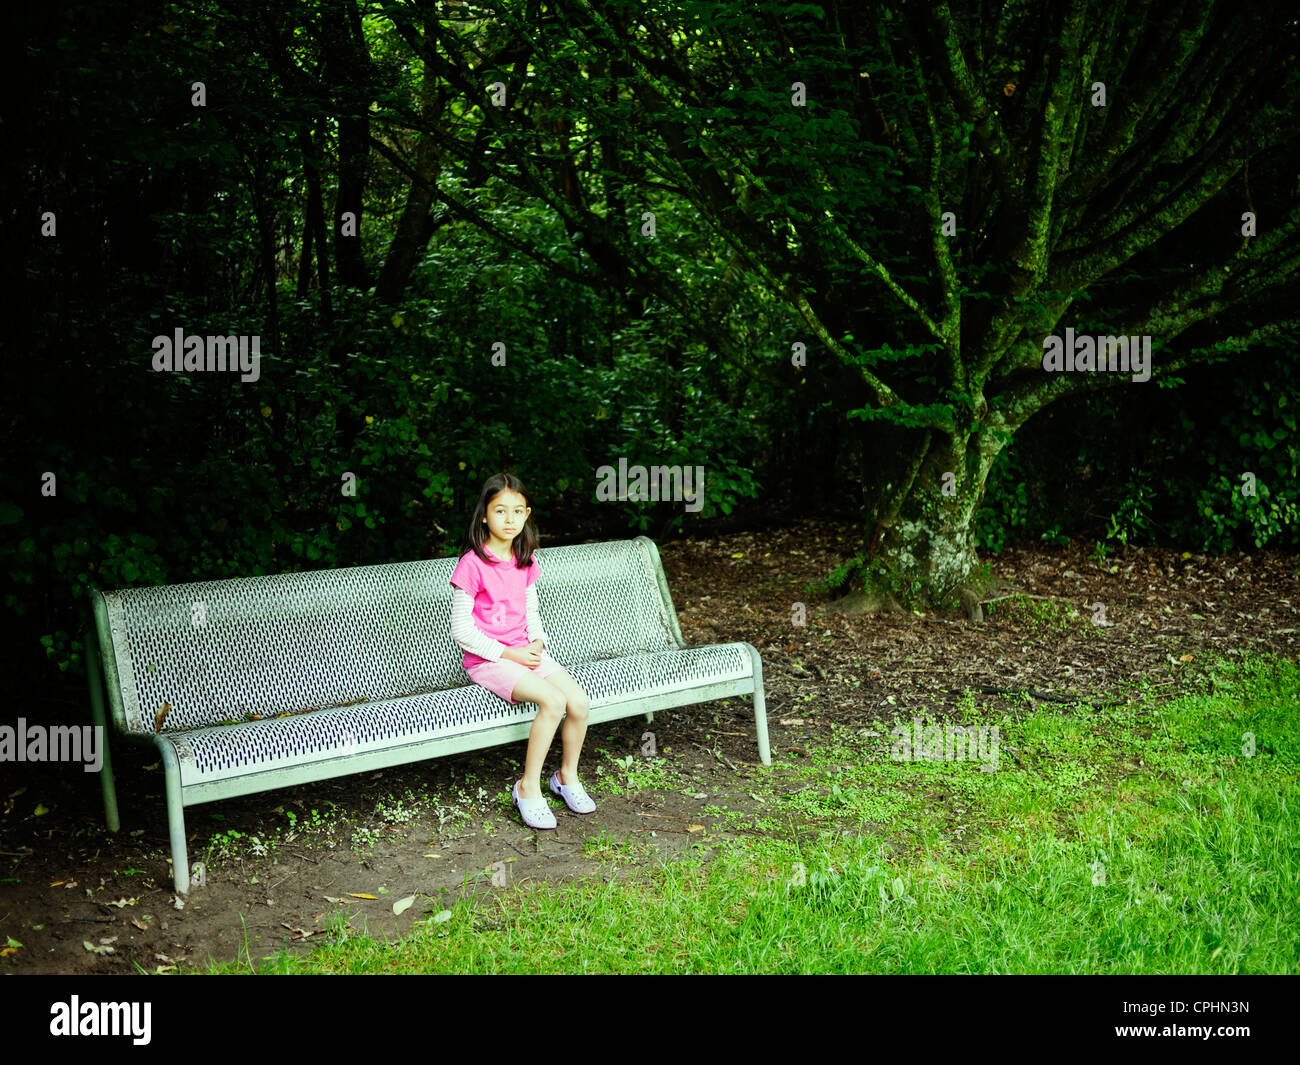 Girl sits under tree on park bench. - Stock Image